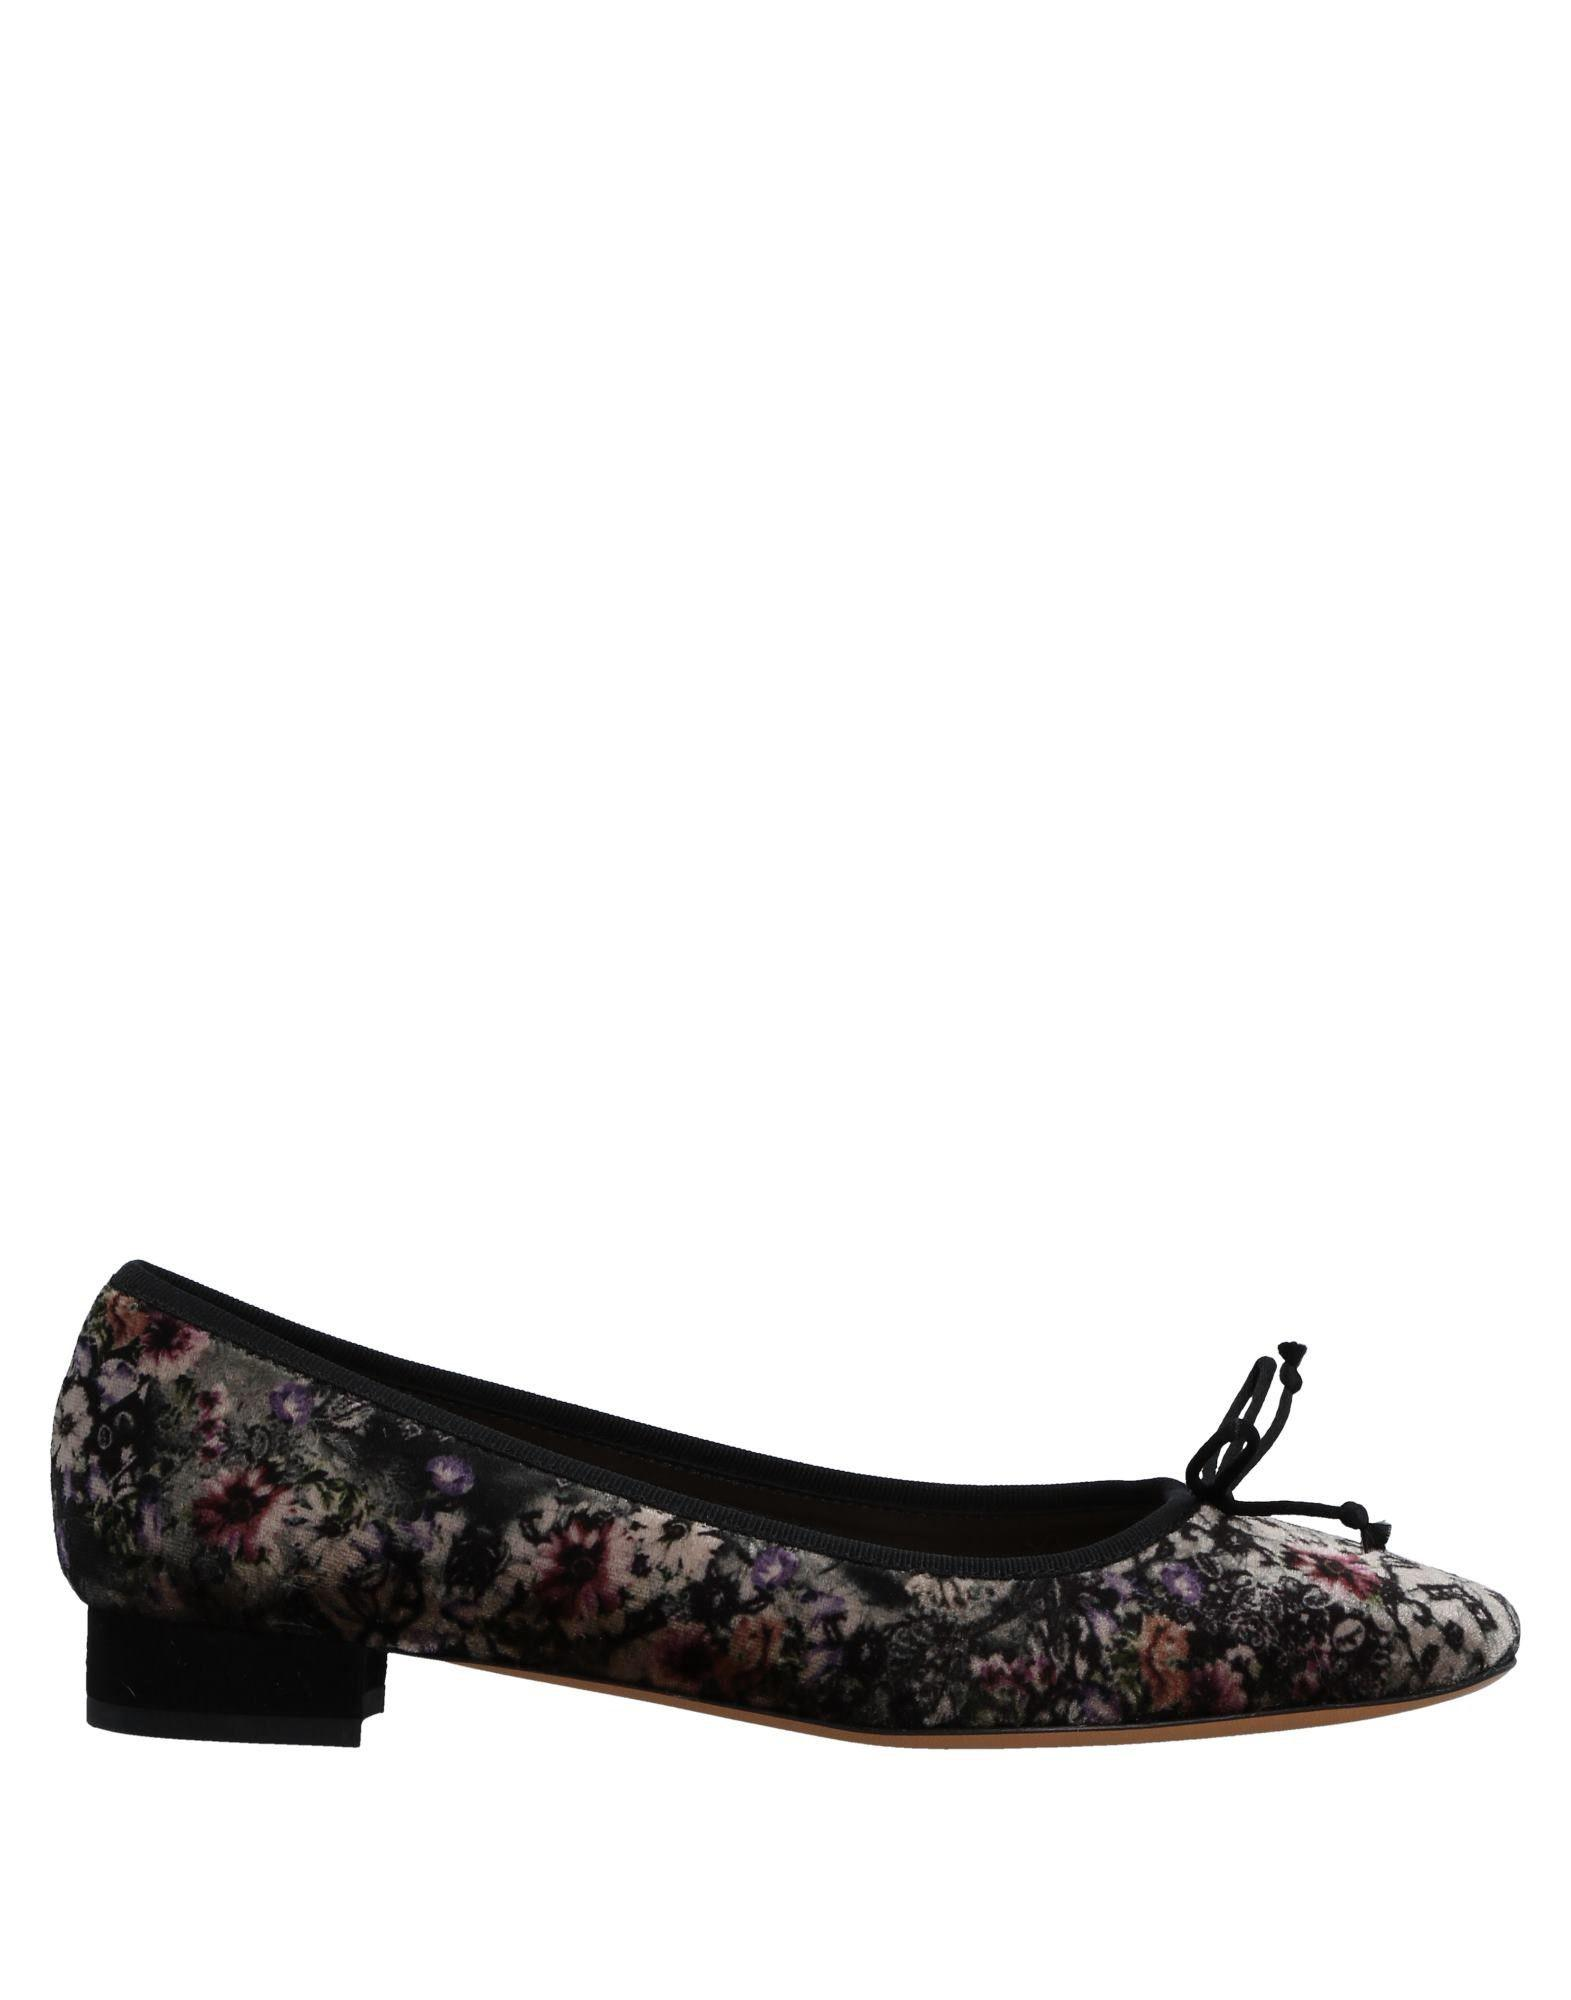 bf7f06a727a8be Lyst - Fabio Rusconi Ballet Flats in Black